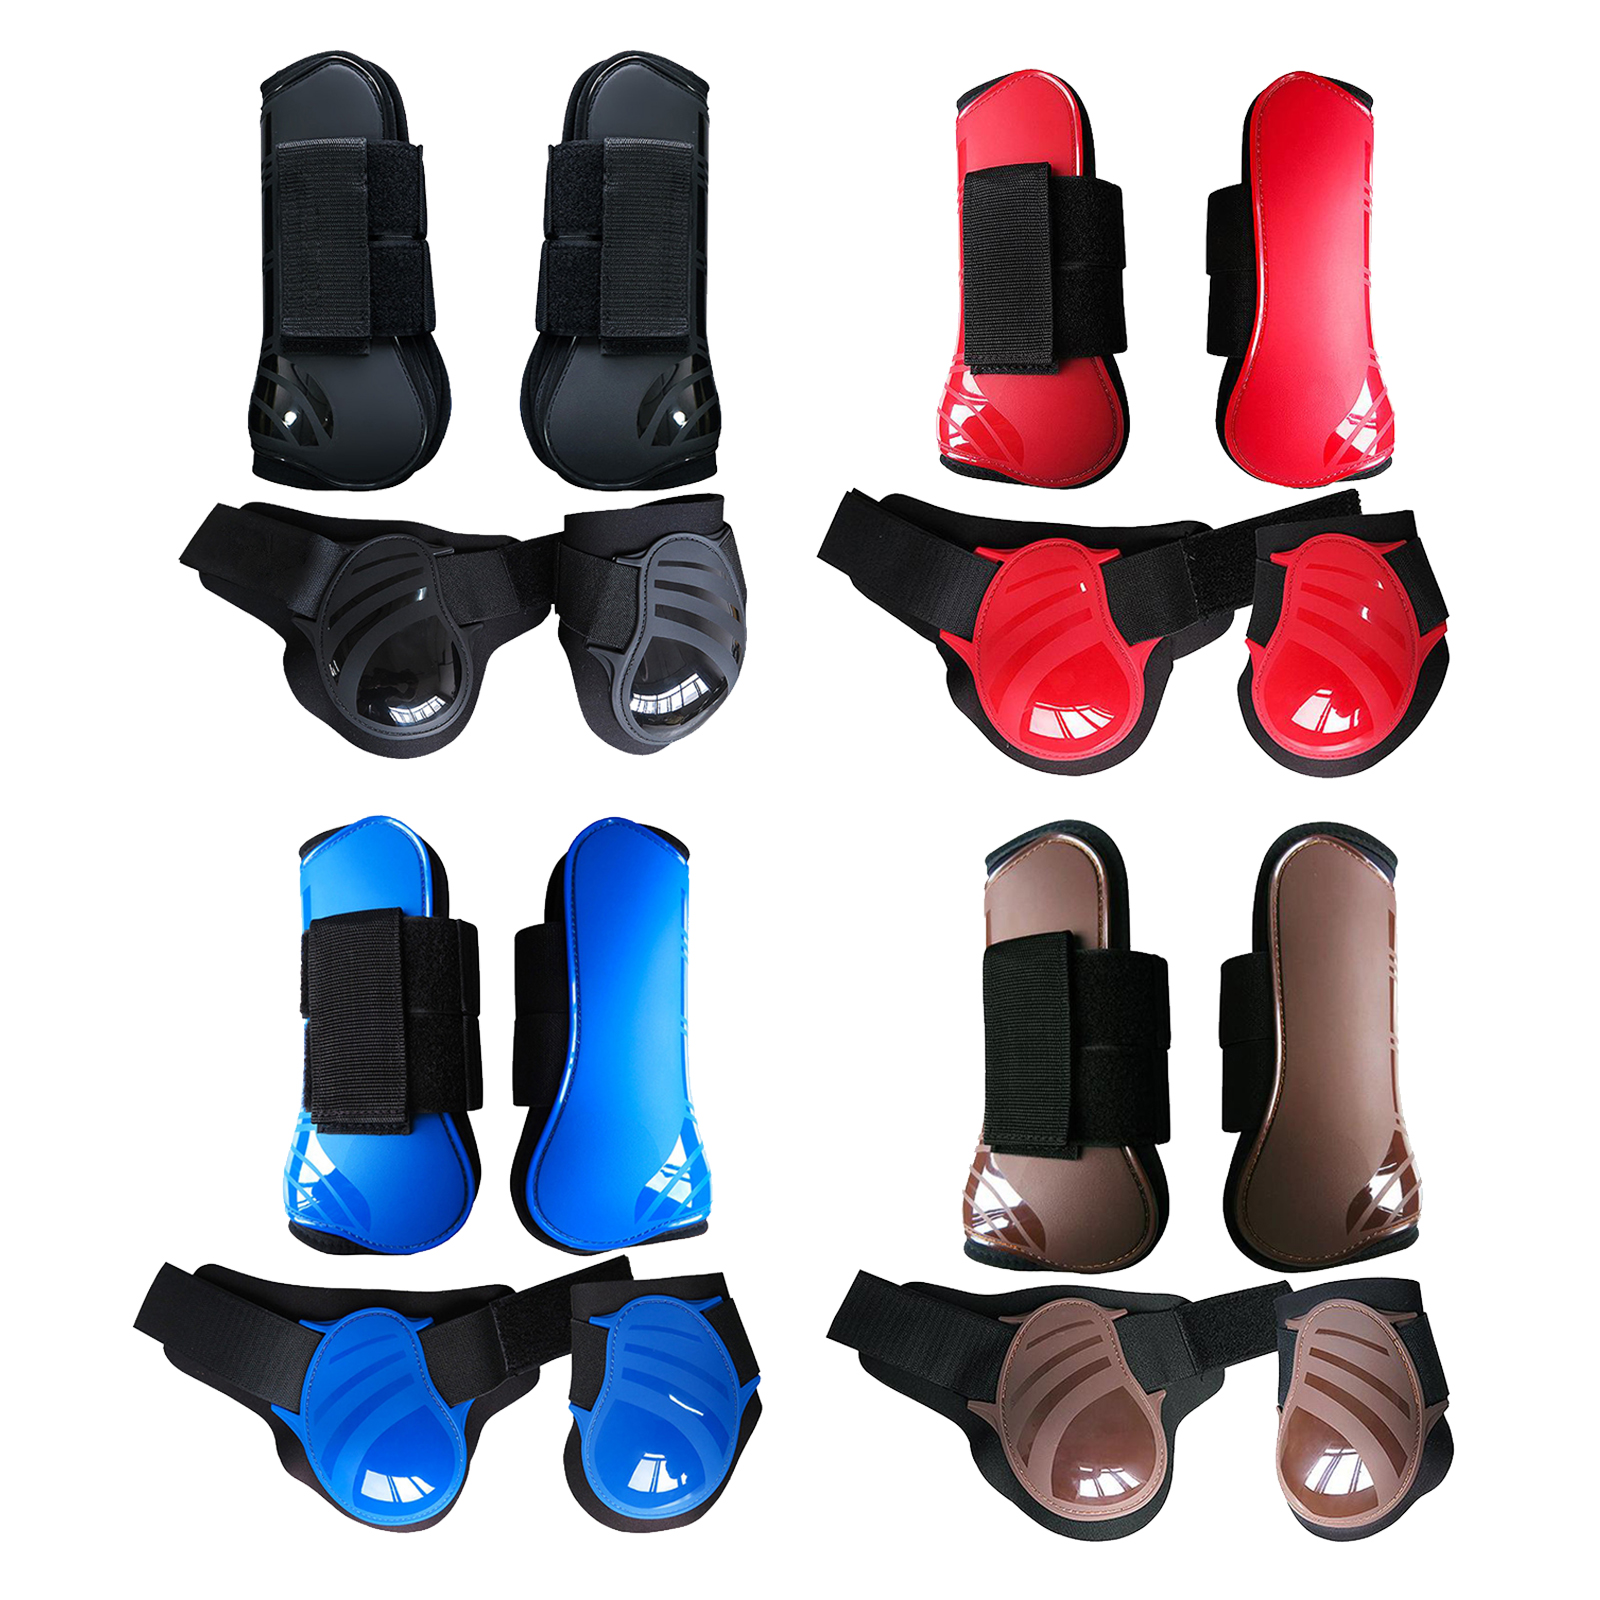 Horse Leg Protection Boots Wrapping Set of 4, Front Fetlock and Tendon Boots for Horses Pony - Impact-Absorbing and Breathable